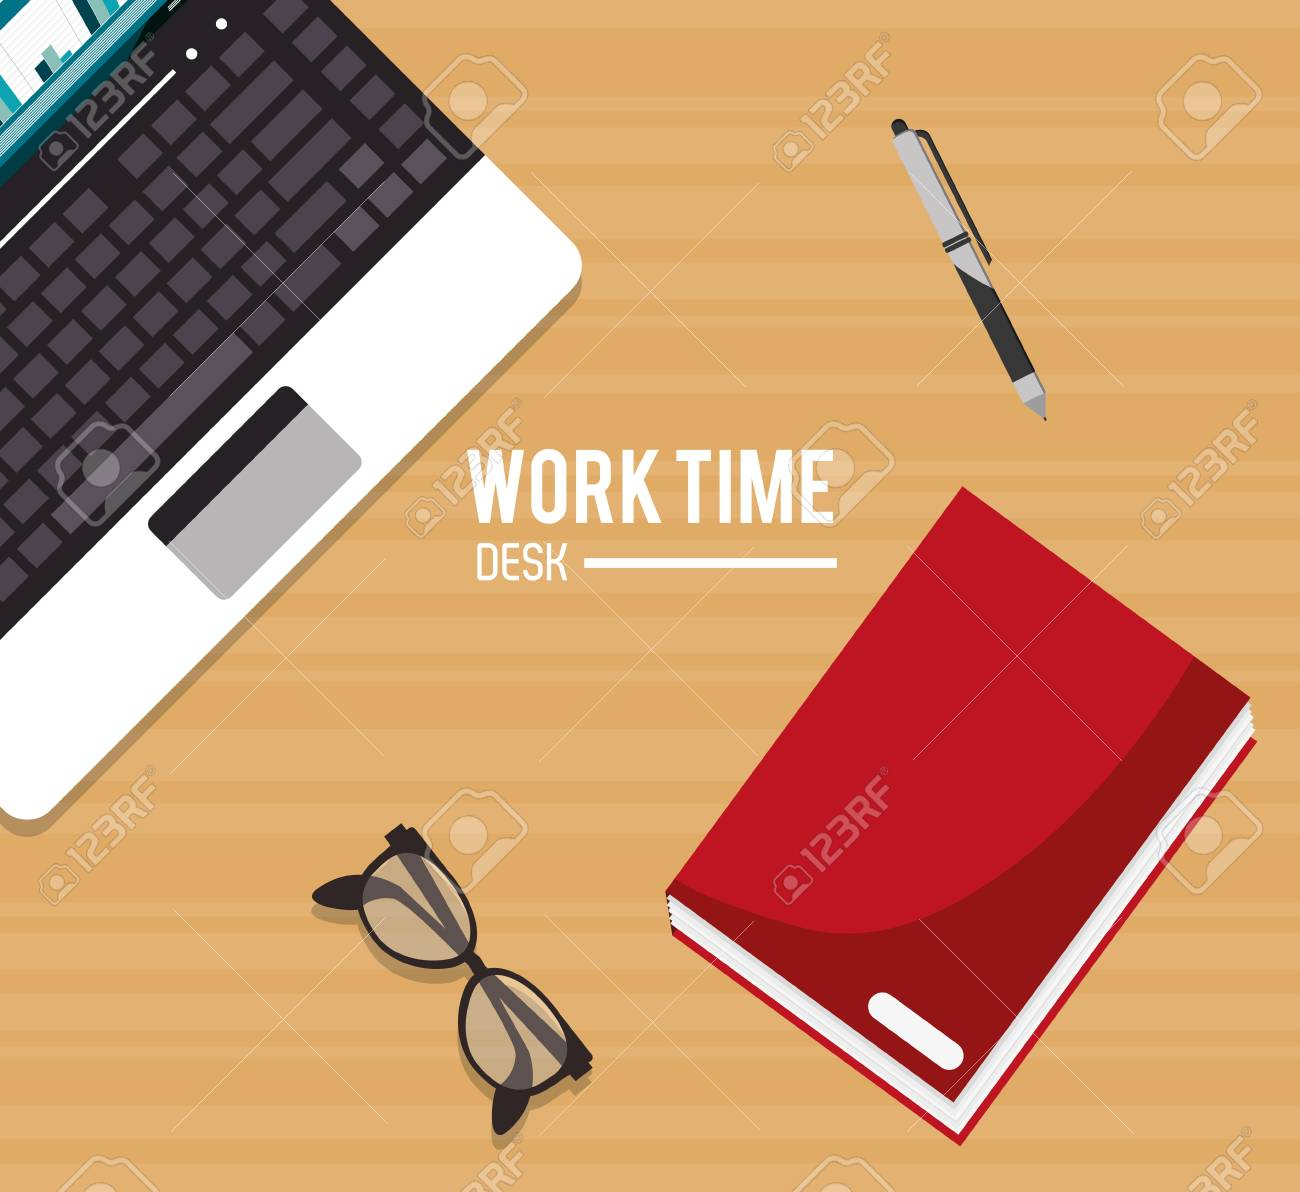 laptop over desk notebook and glasses icon work time office